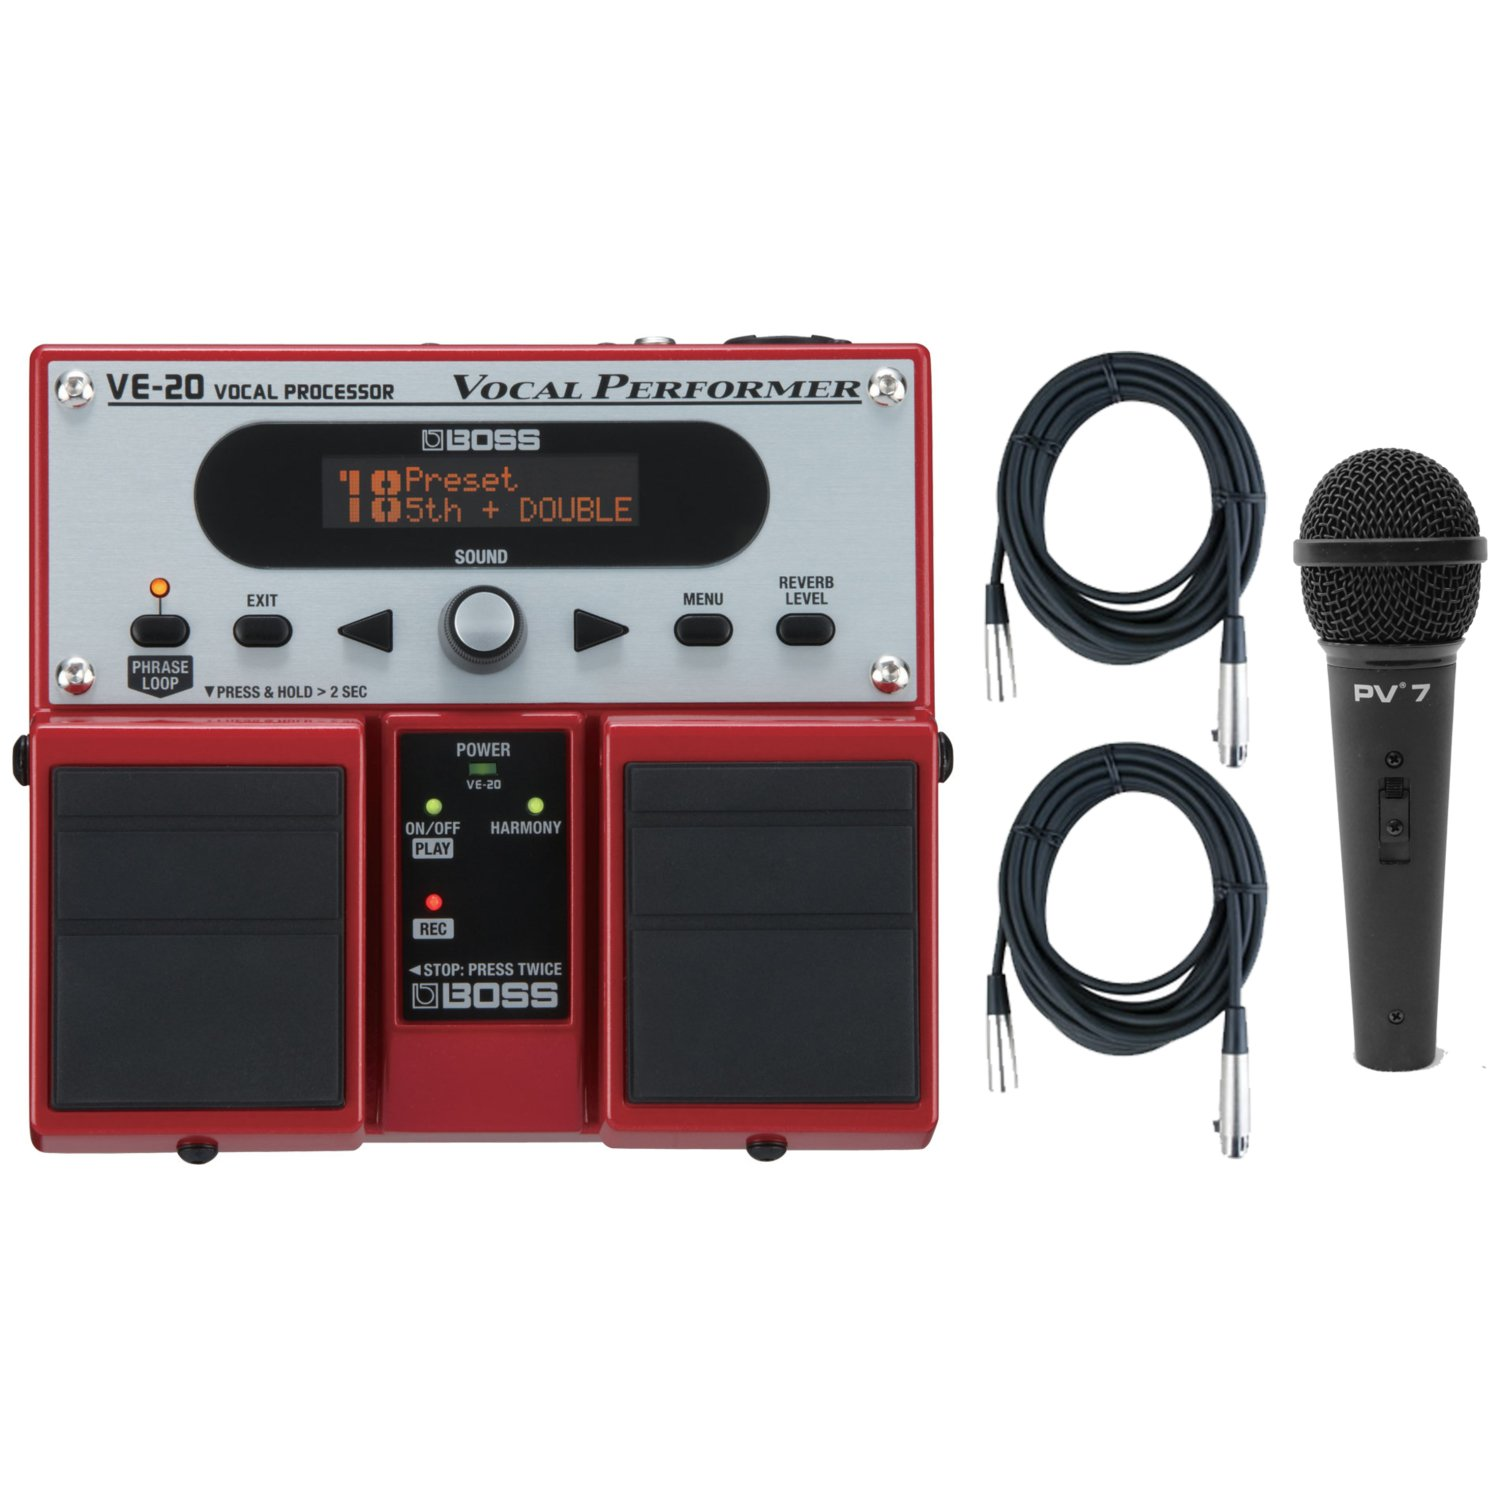 Boss VE-20 Vocal Performer Vocal Processor Pedal w/ Dynamic Microphone and (2) 20' XLR Cables